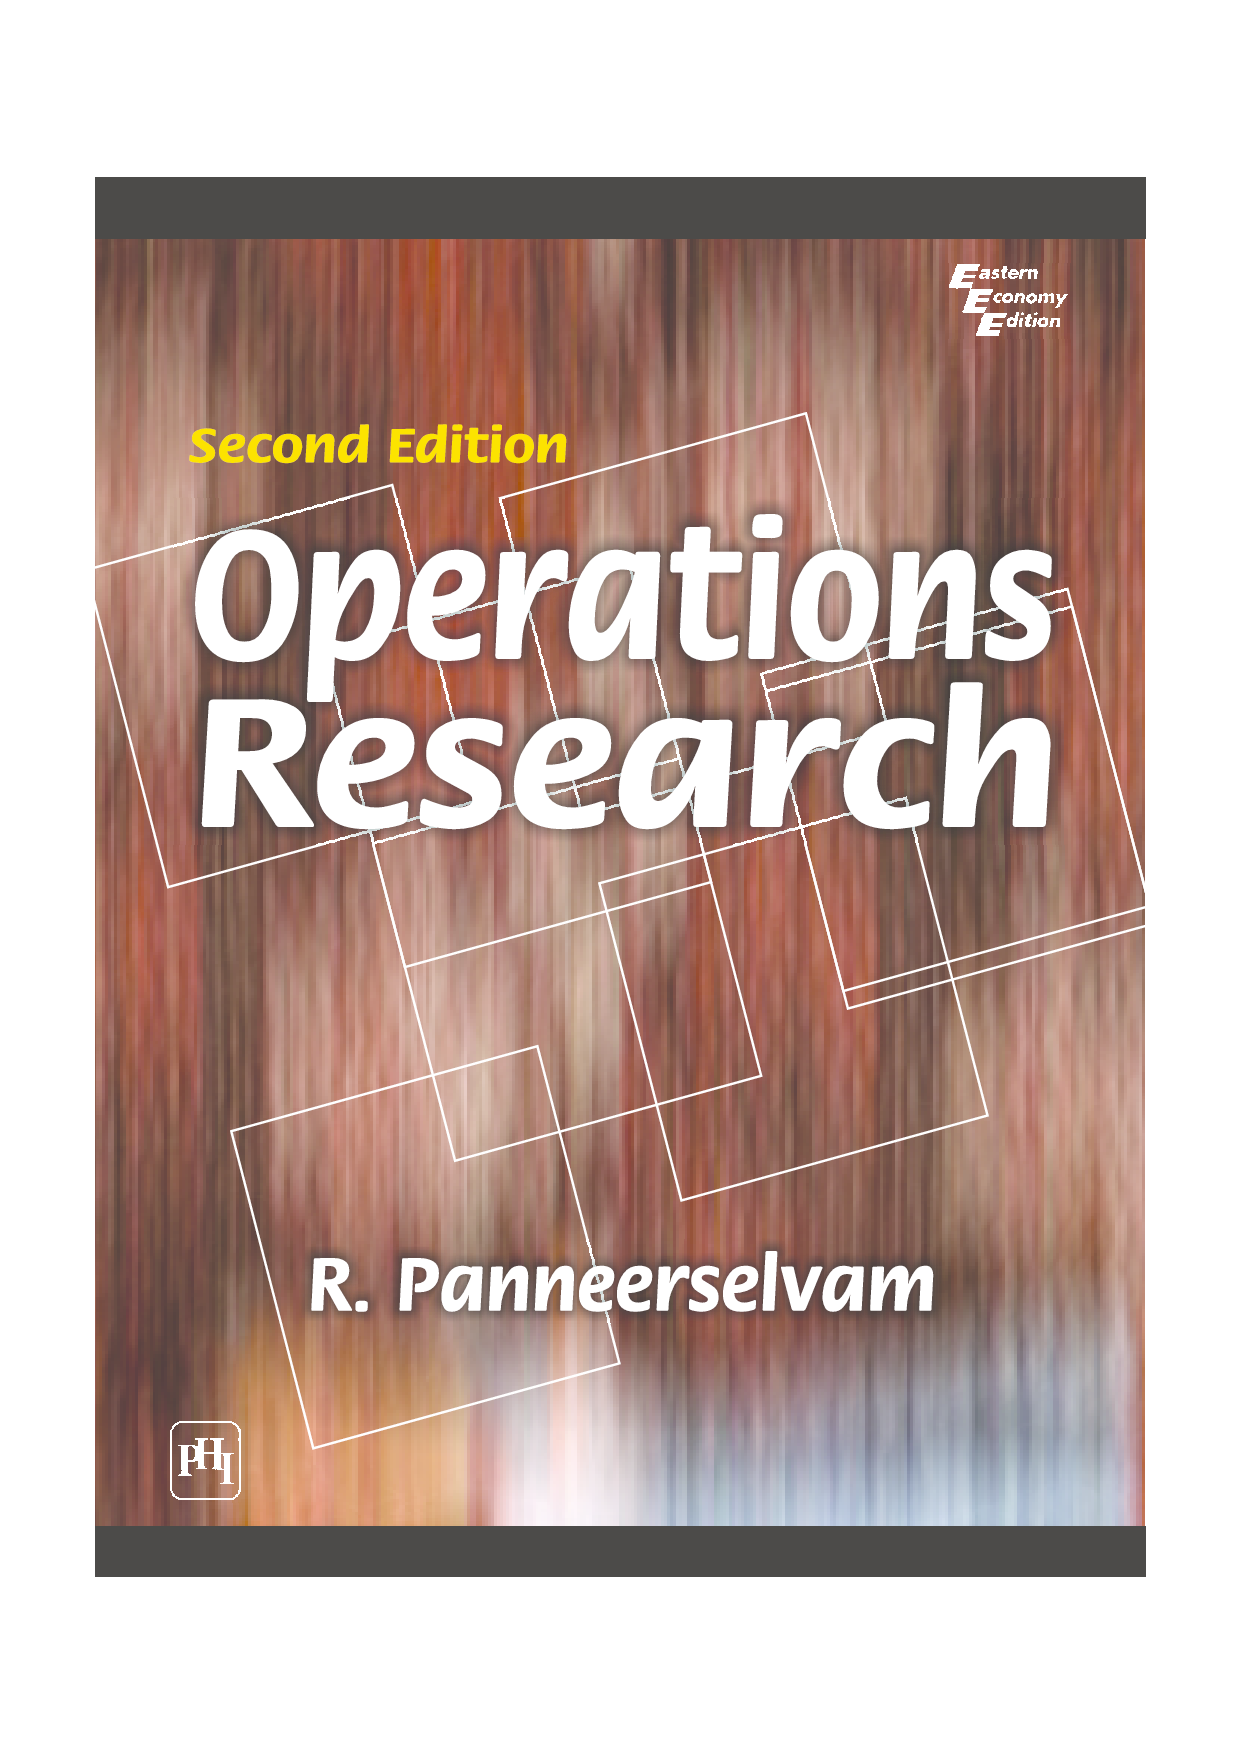 Operations Research - Page 1